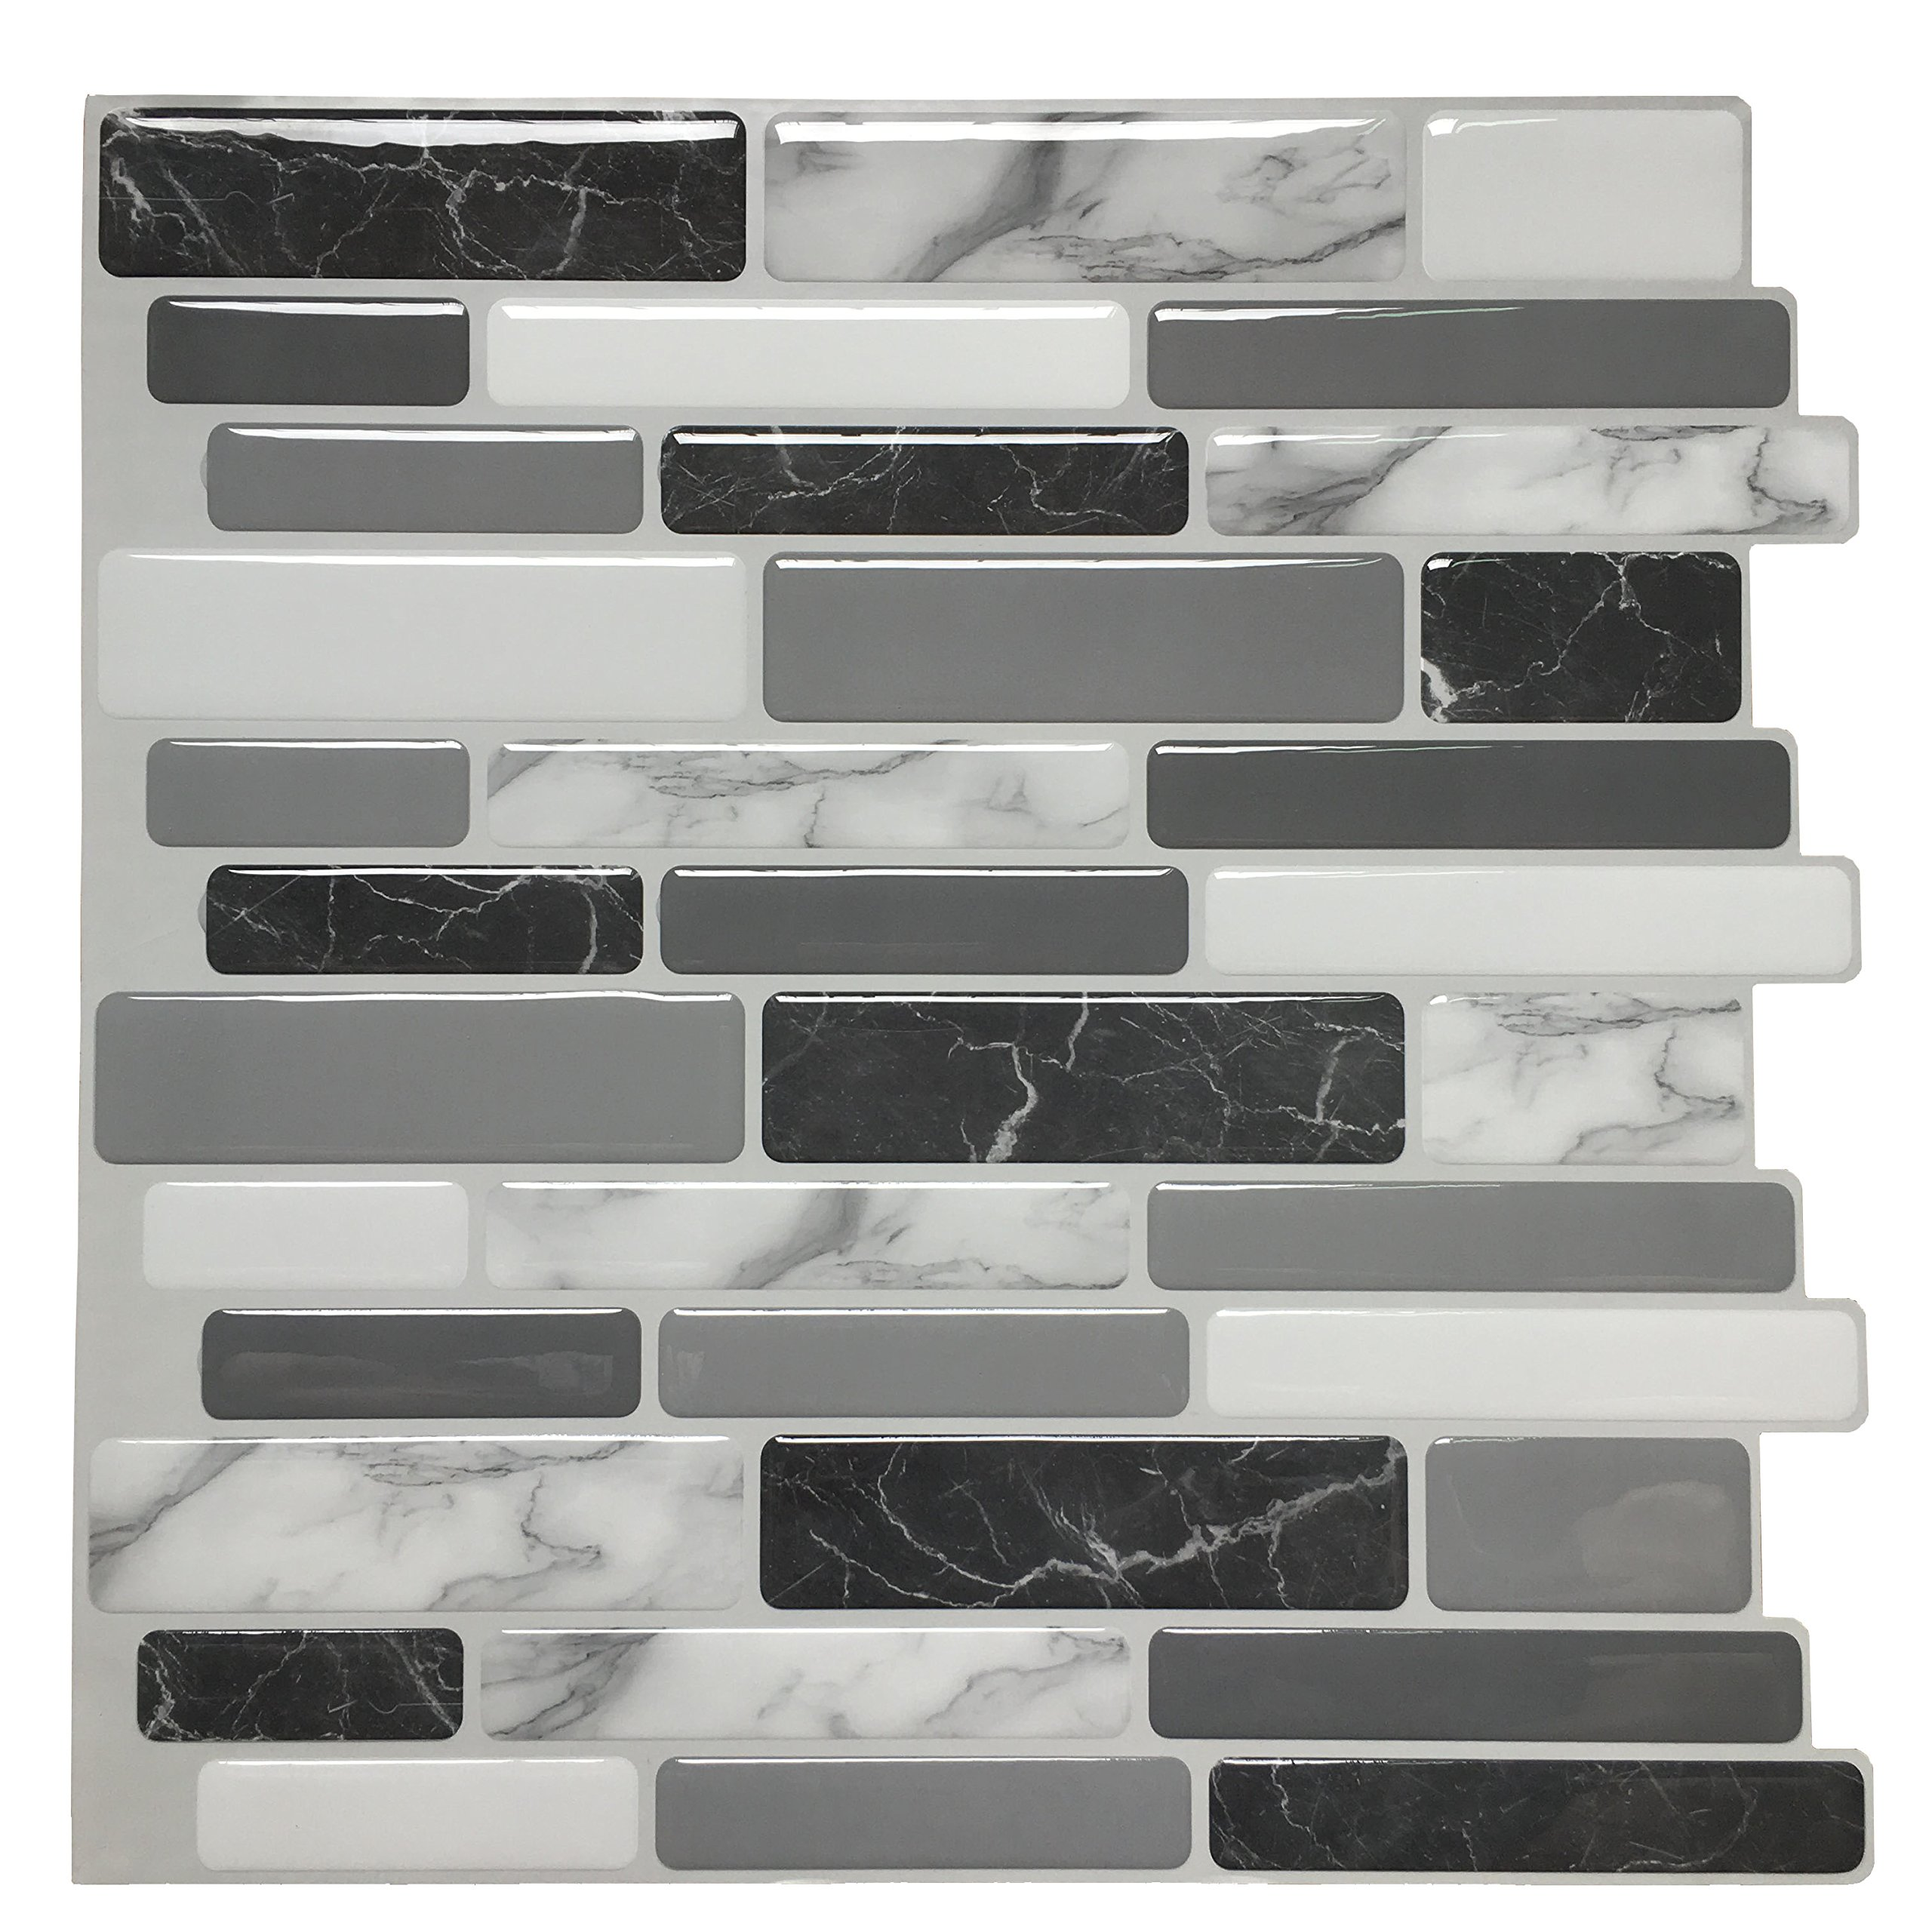 12x12 peel and stick backsplash tile for kitchen marble grey 6 easy diy peel and stick tile concept of mosaic sticker smart tile is made of an adhesive substrate topped with a gel component called pu resin the embossed dailygadgetfo Gallery